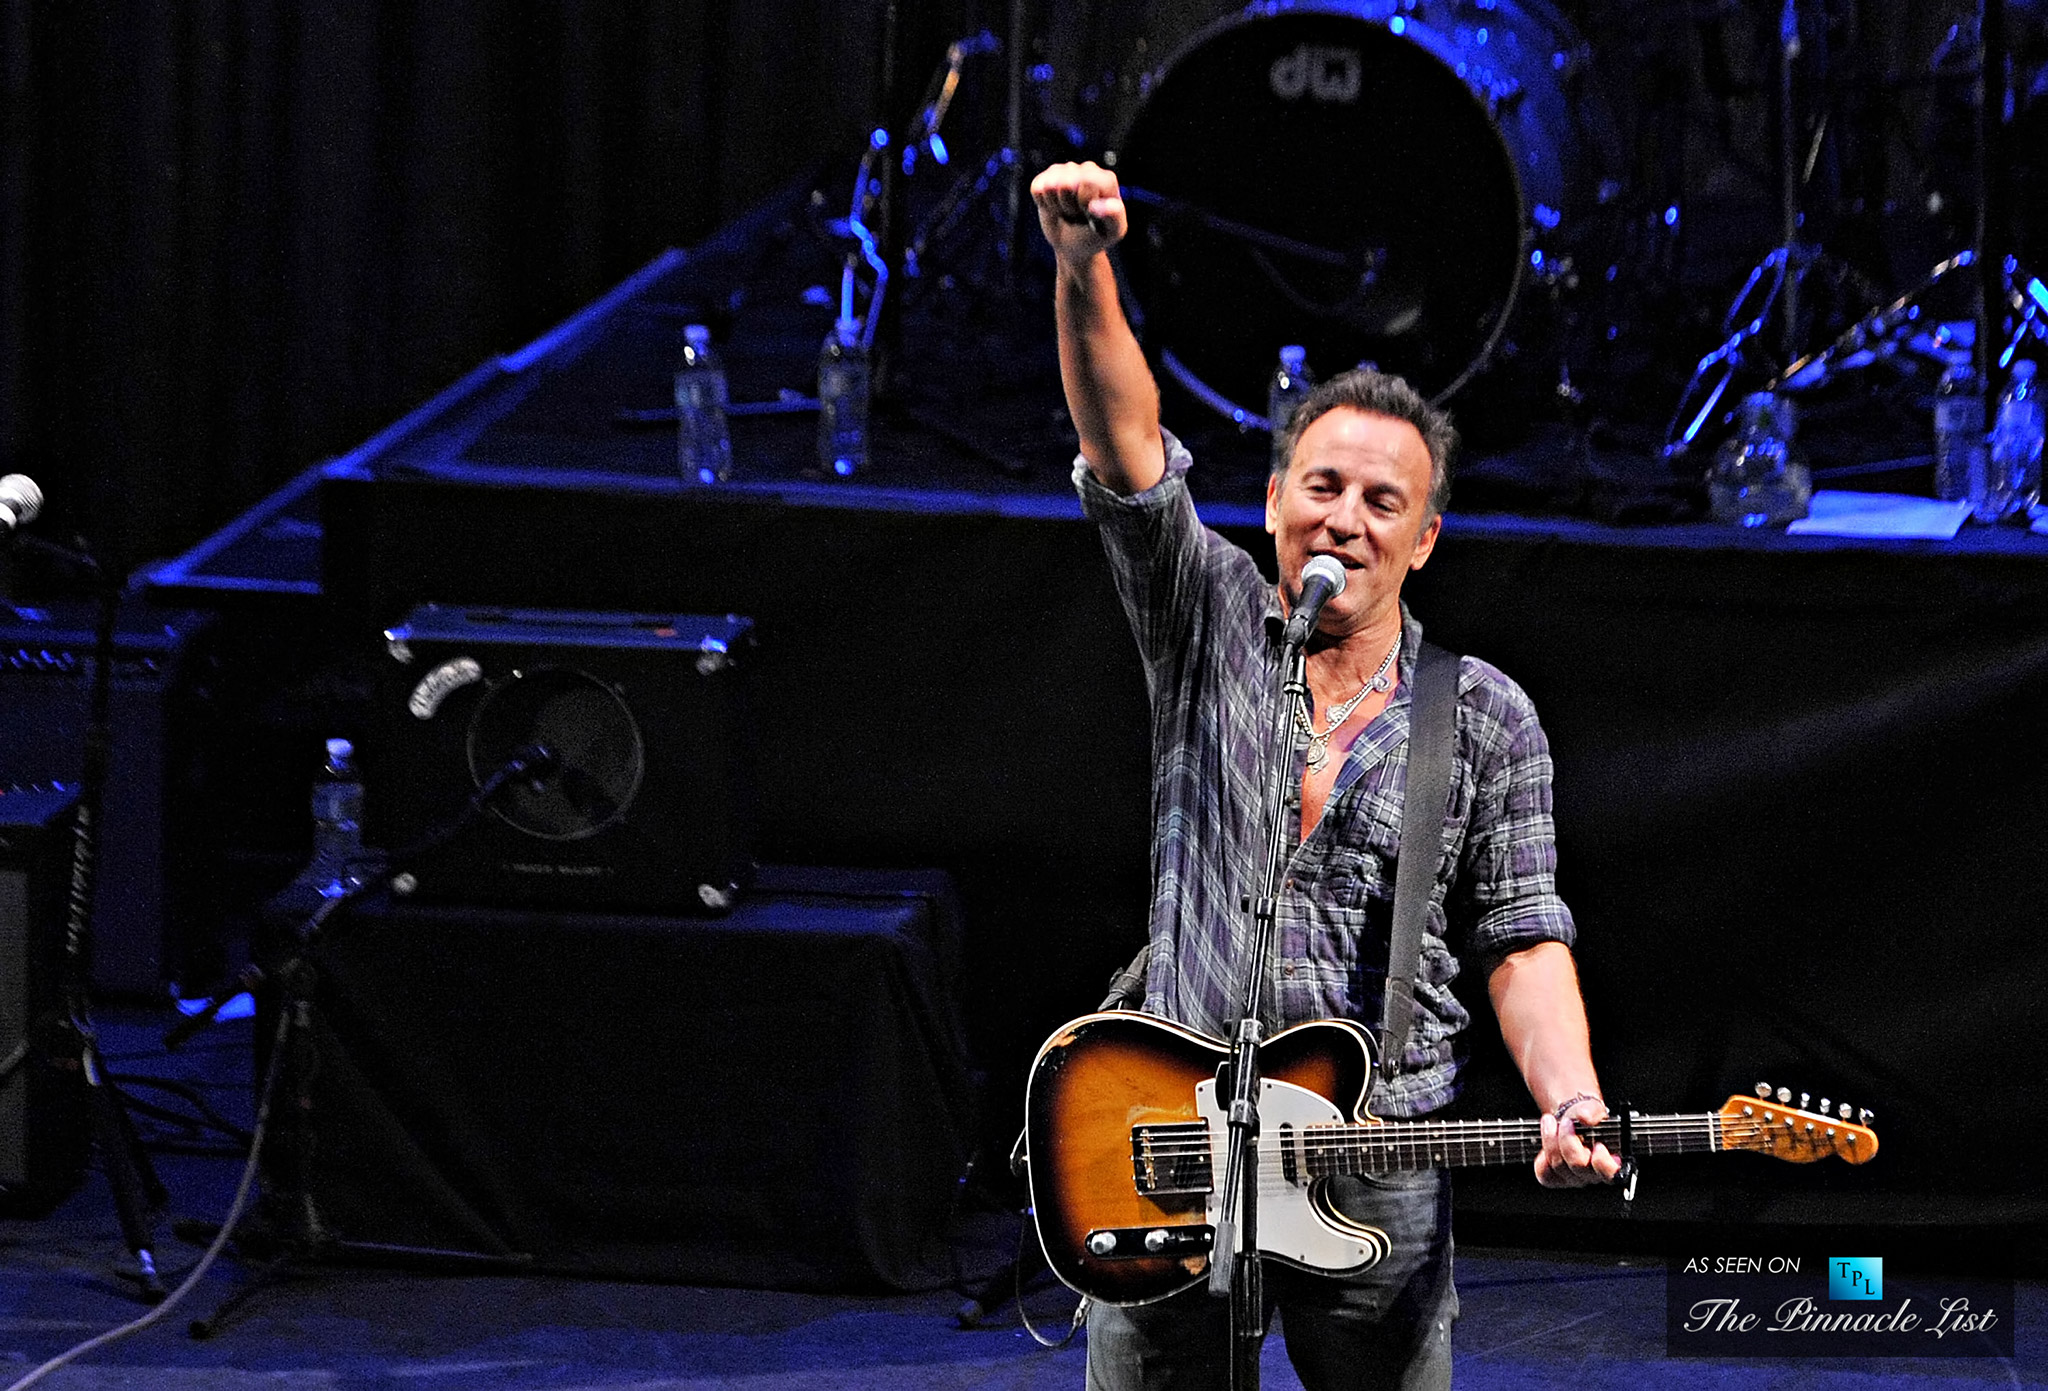 Bruce Springsteen - Protecting High Value Assets - Five Unusual and Noteworthy Celebrity Insurance Policies